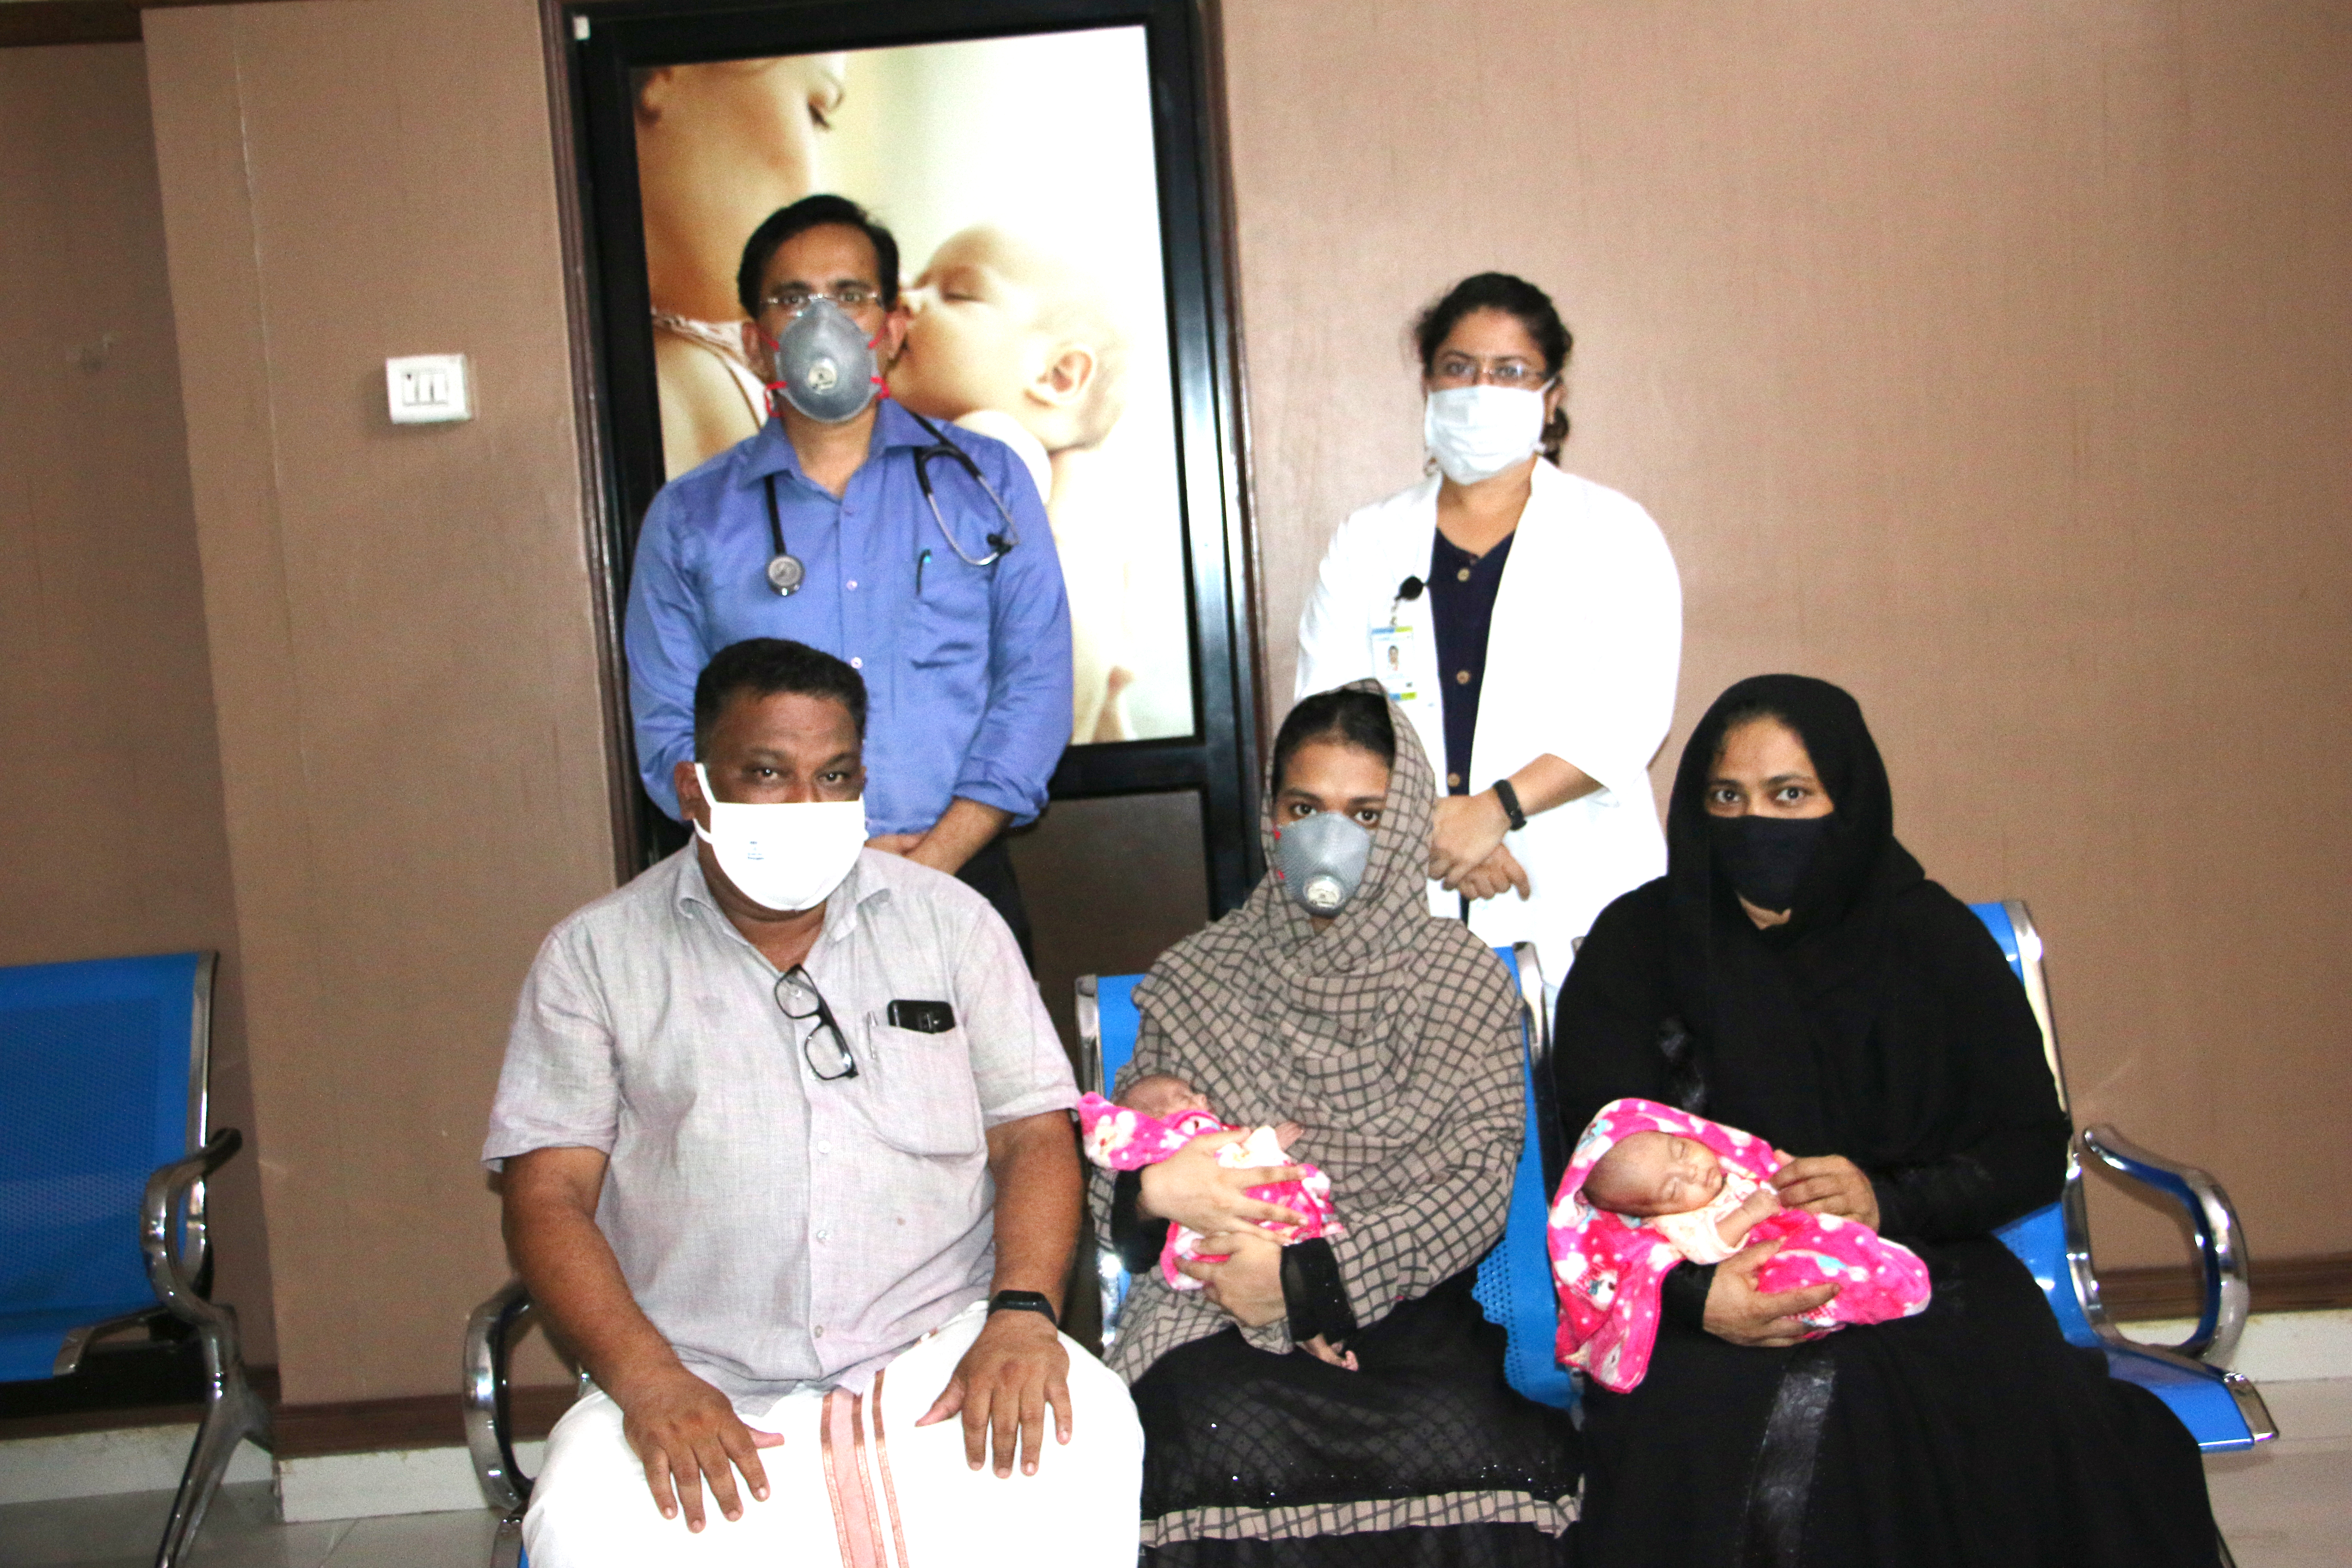 India's 'tiniest' baby released from Kochi hospital